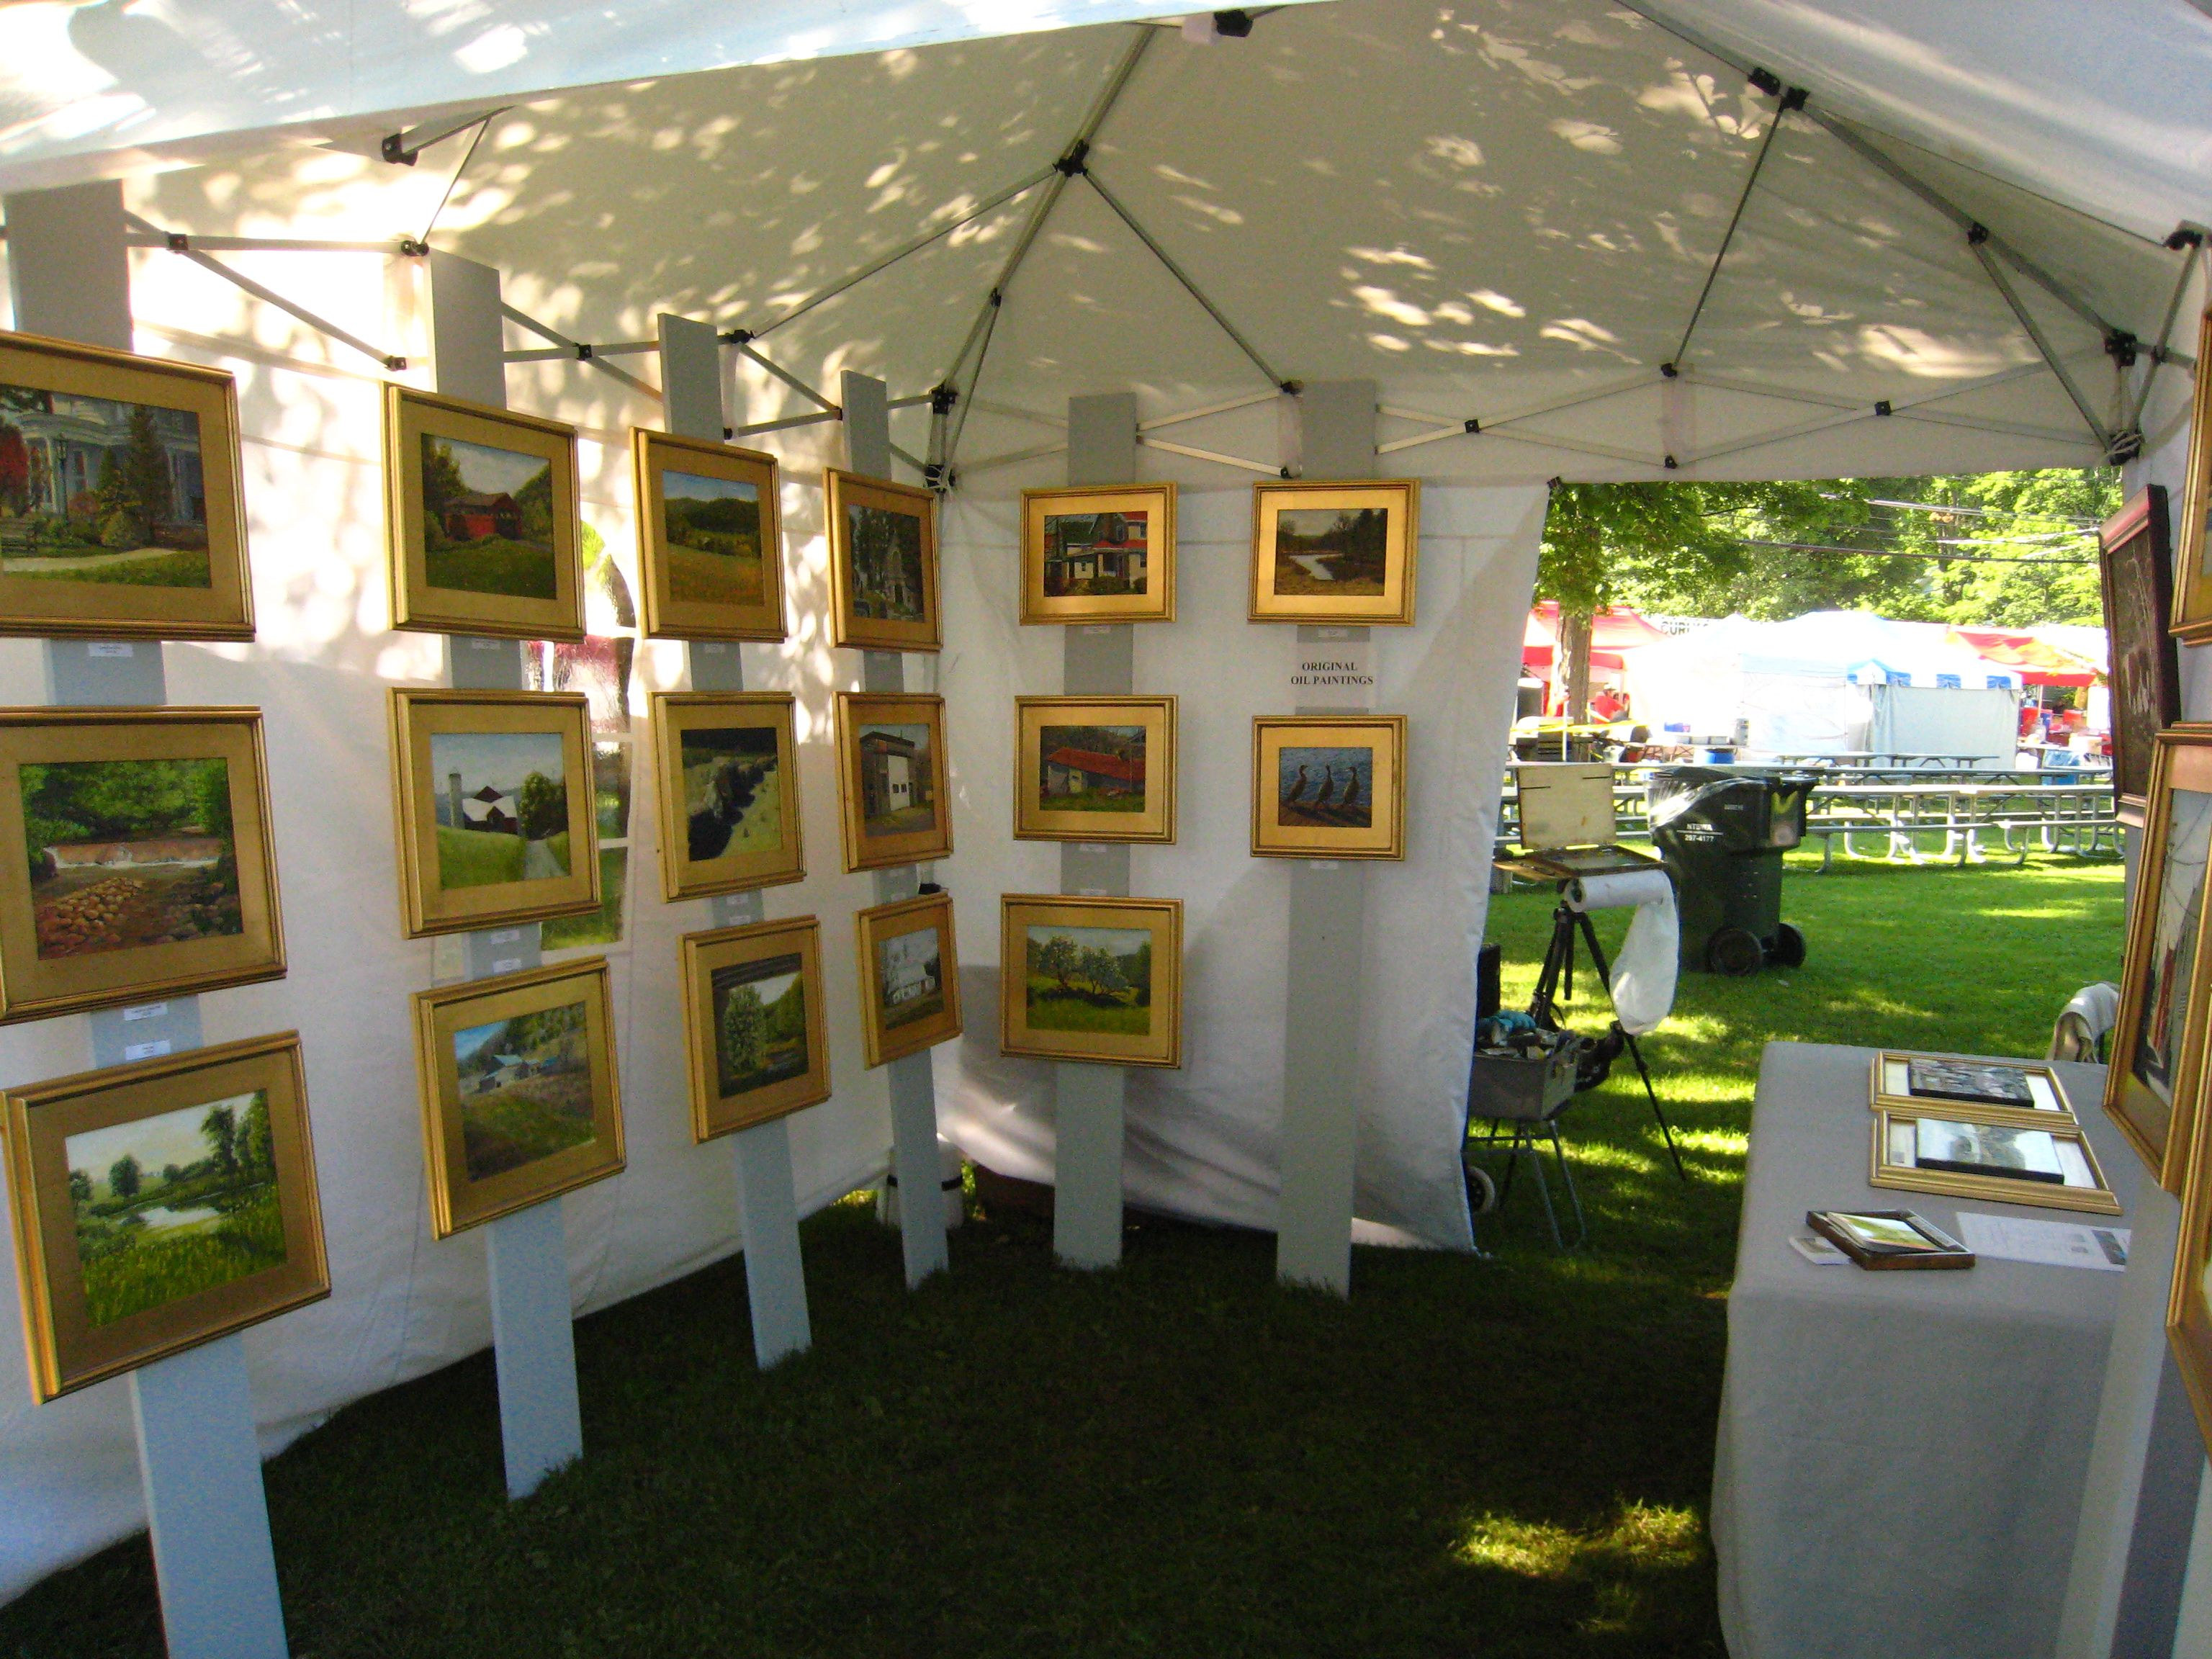 superb Art Festival Booth Display Ideas Part - 7: Wooden pieces for framed work Display Ideas, Booth Ideas, Craft Booth  Displays, Craft